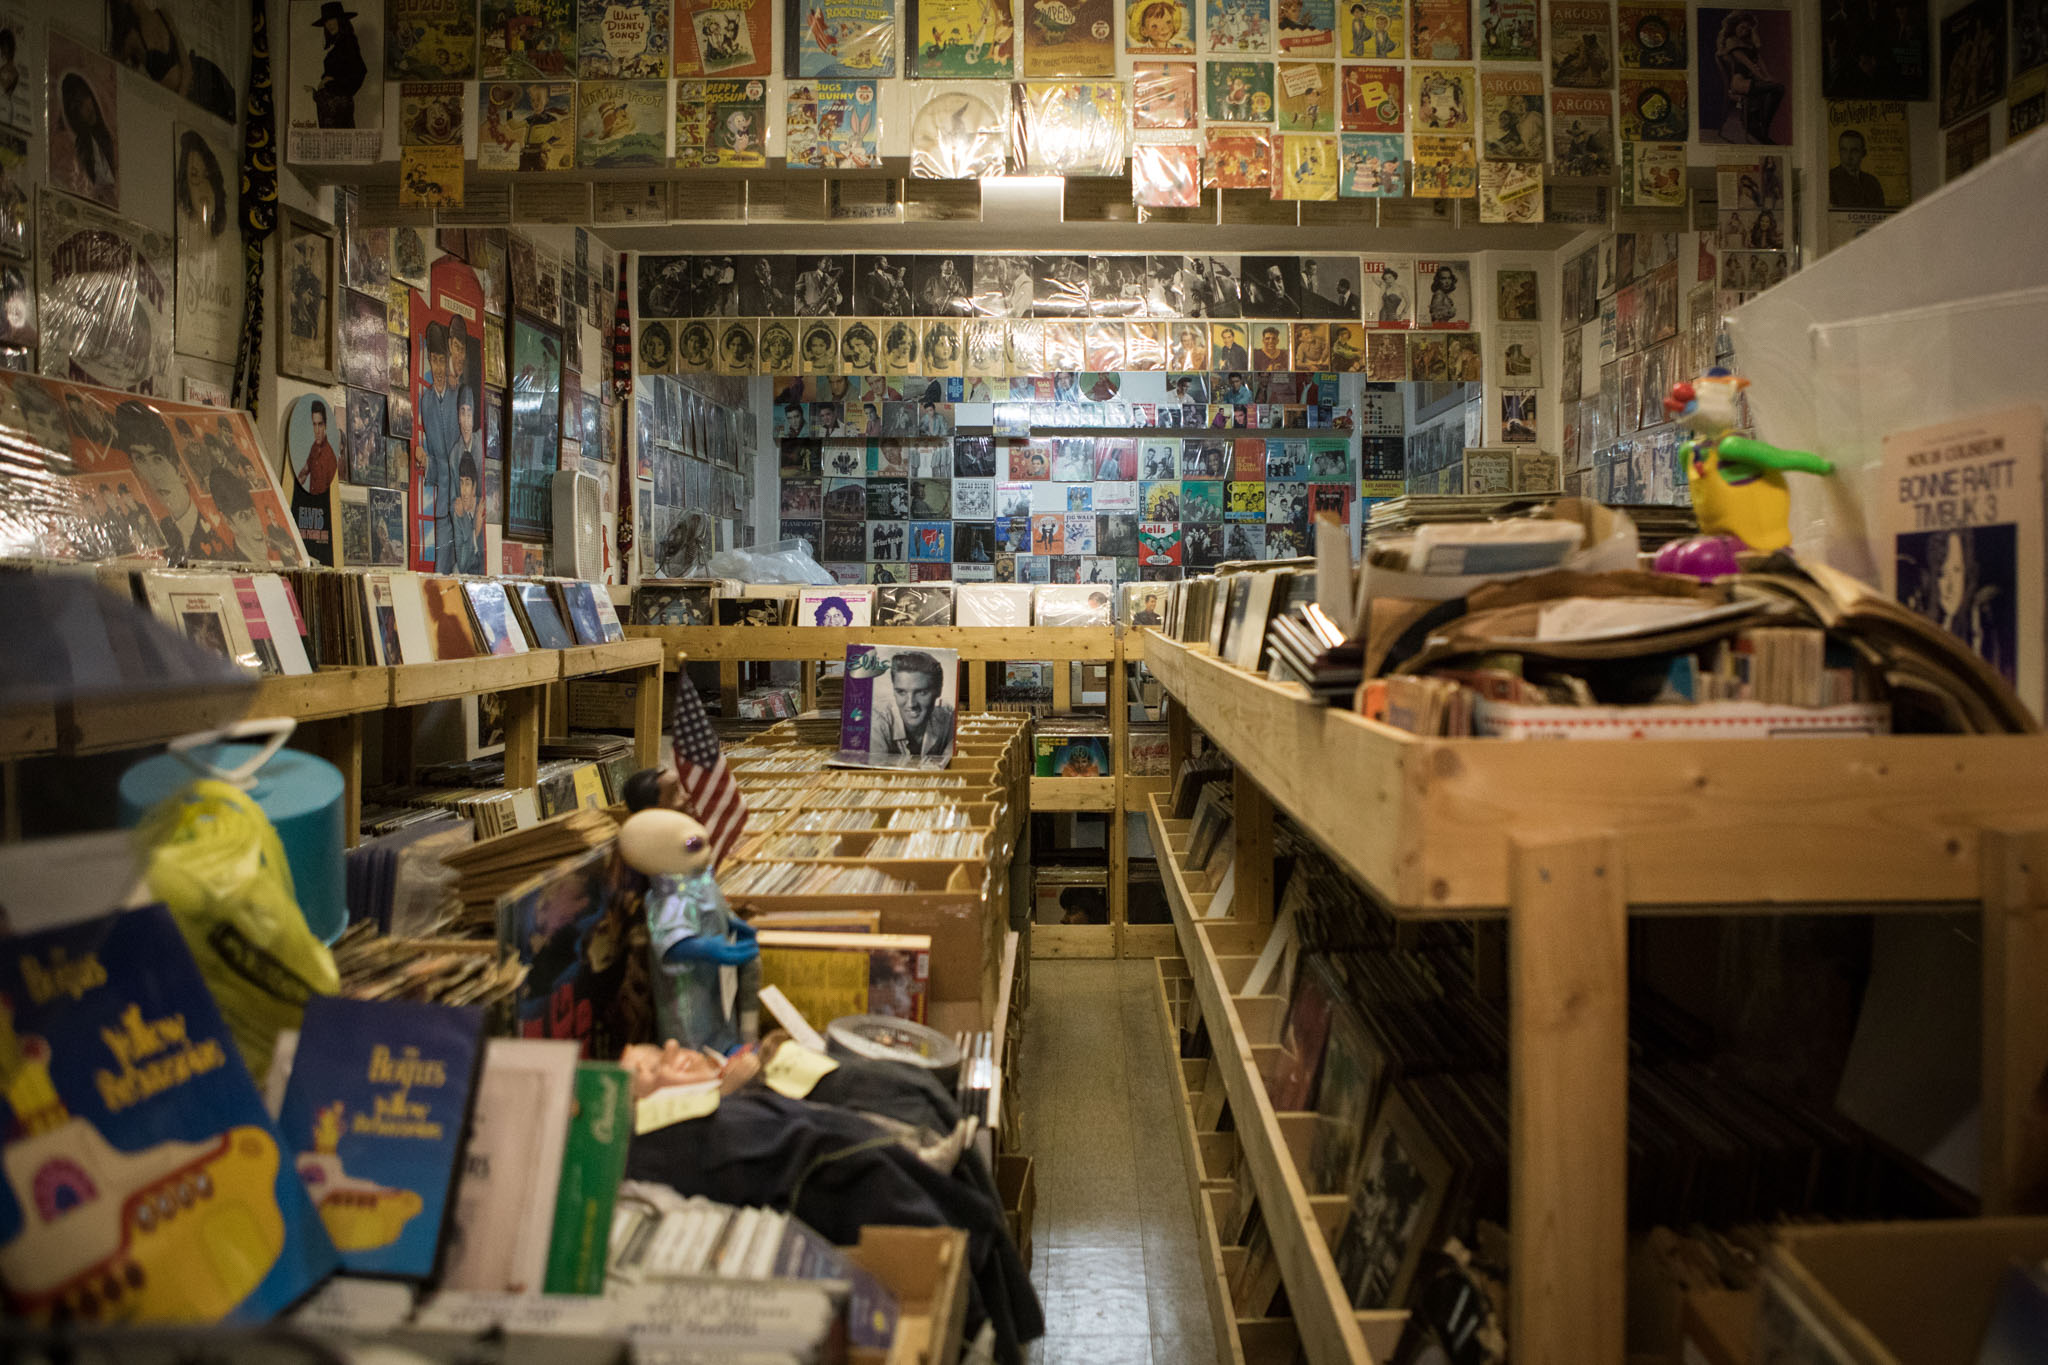 Records line the shelves and walls inside Alamo Records & Sheet Music.